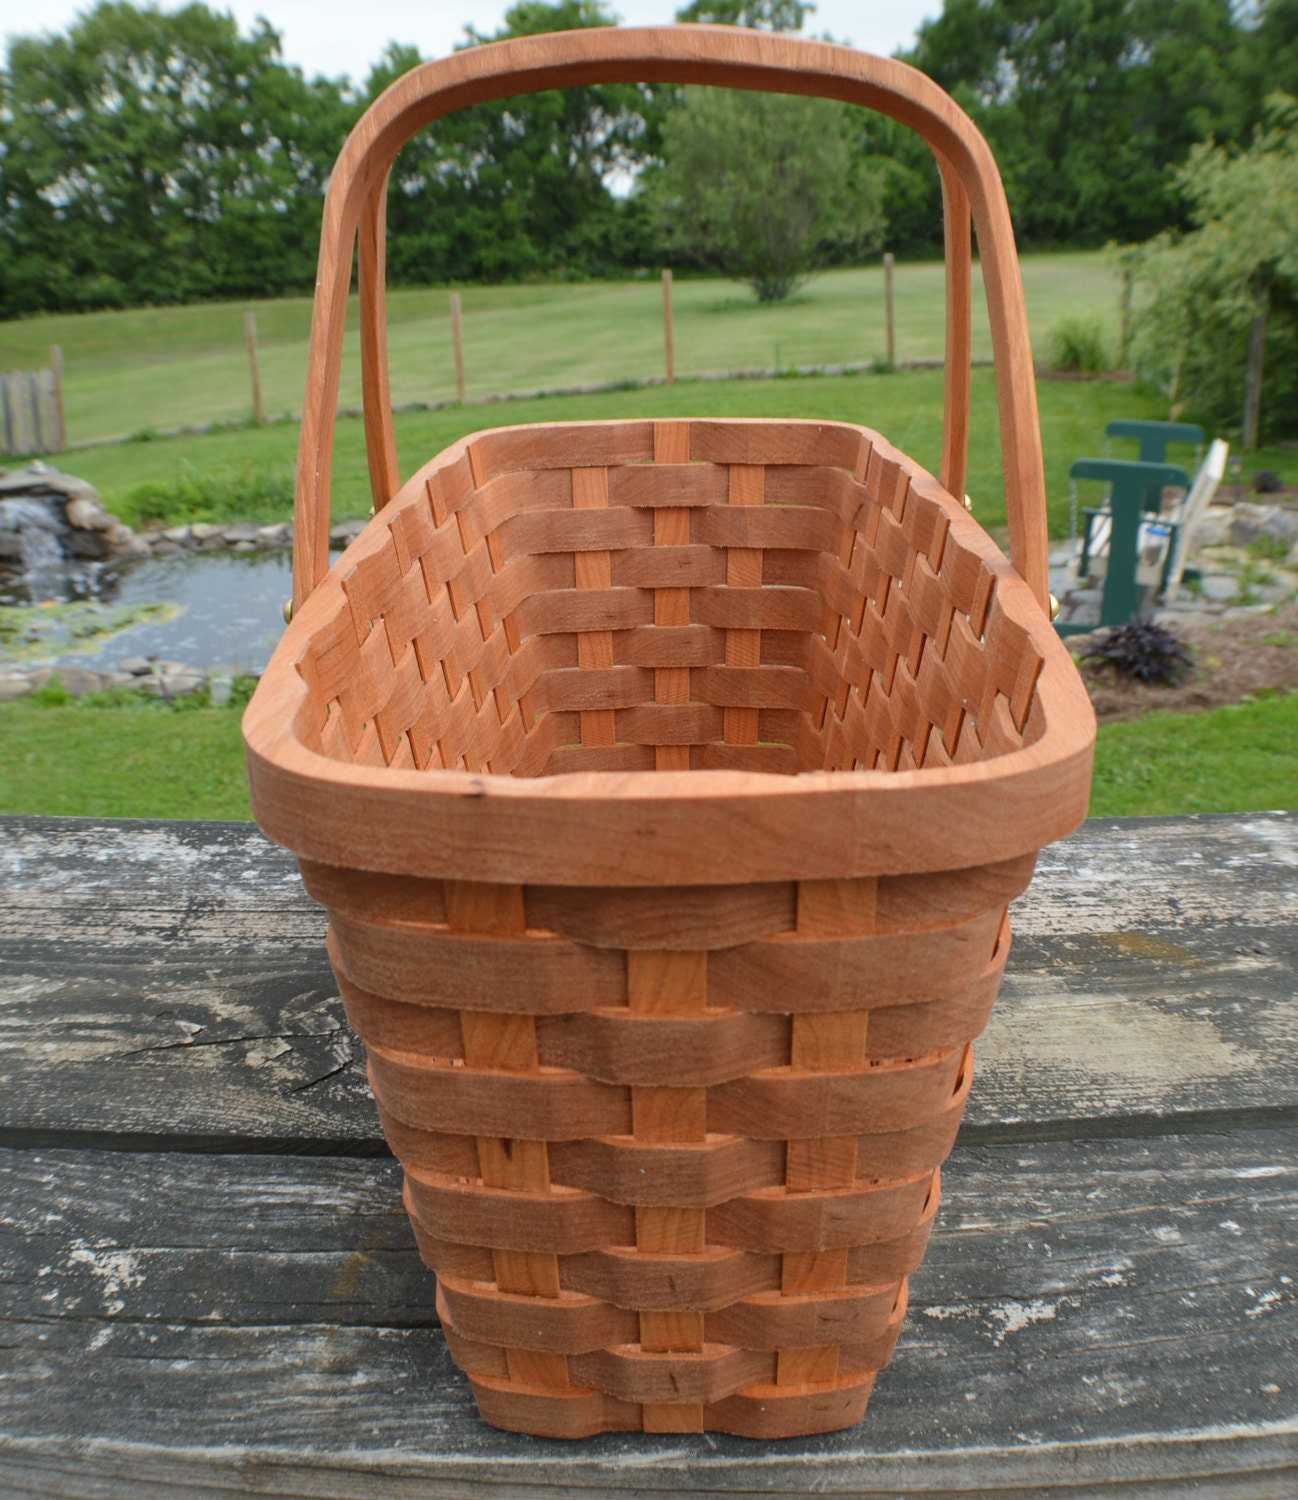 Knitting Basket With Handles : Knitting supplies tote basket with handles cherry by